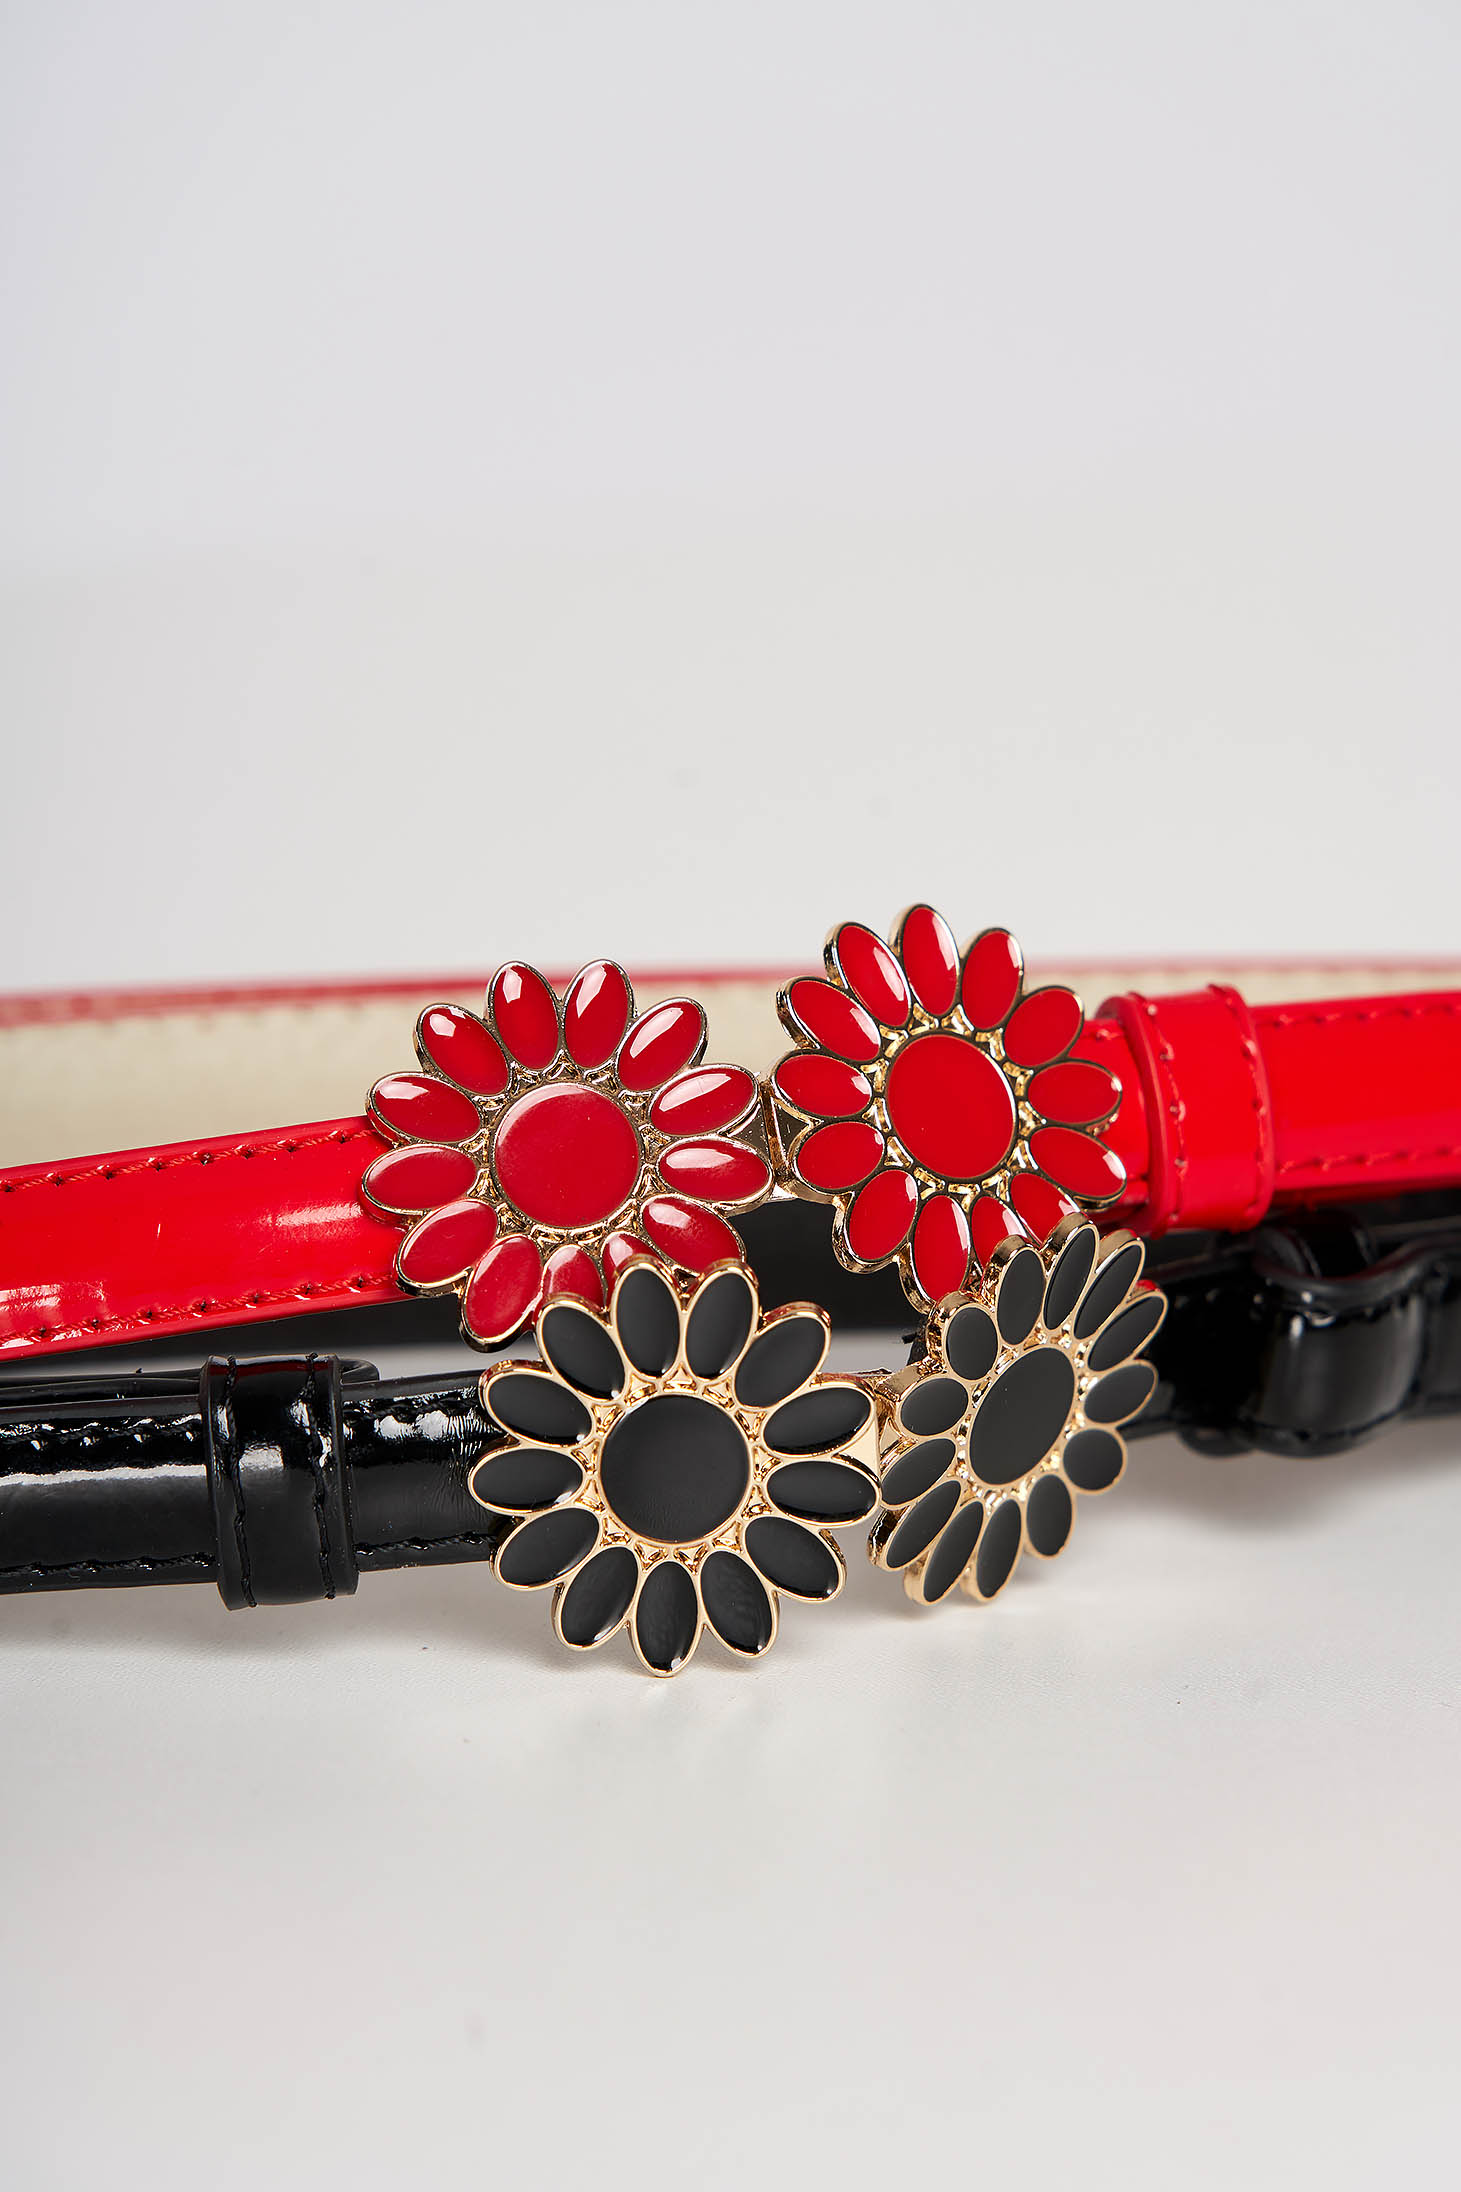 Set StarShinerS from ecological varnished leather red flower shaped accessory